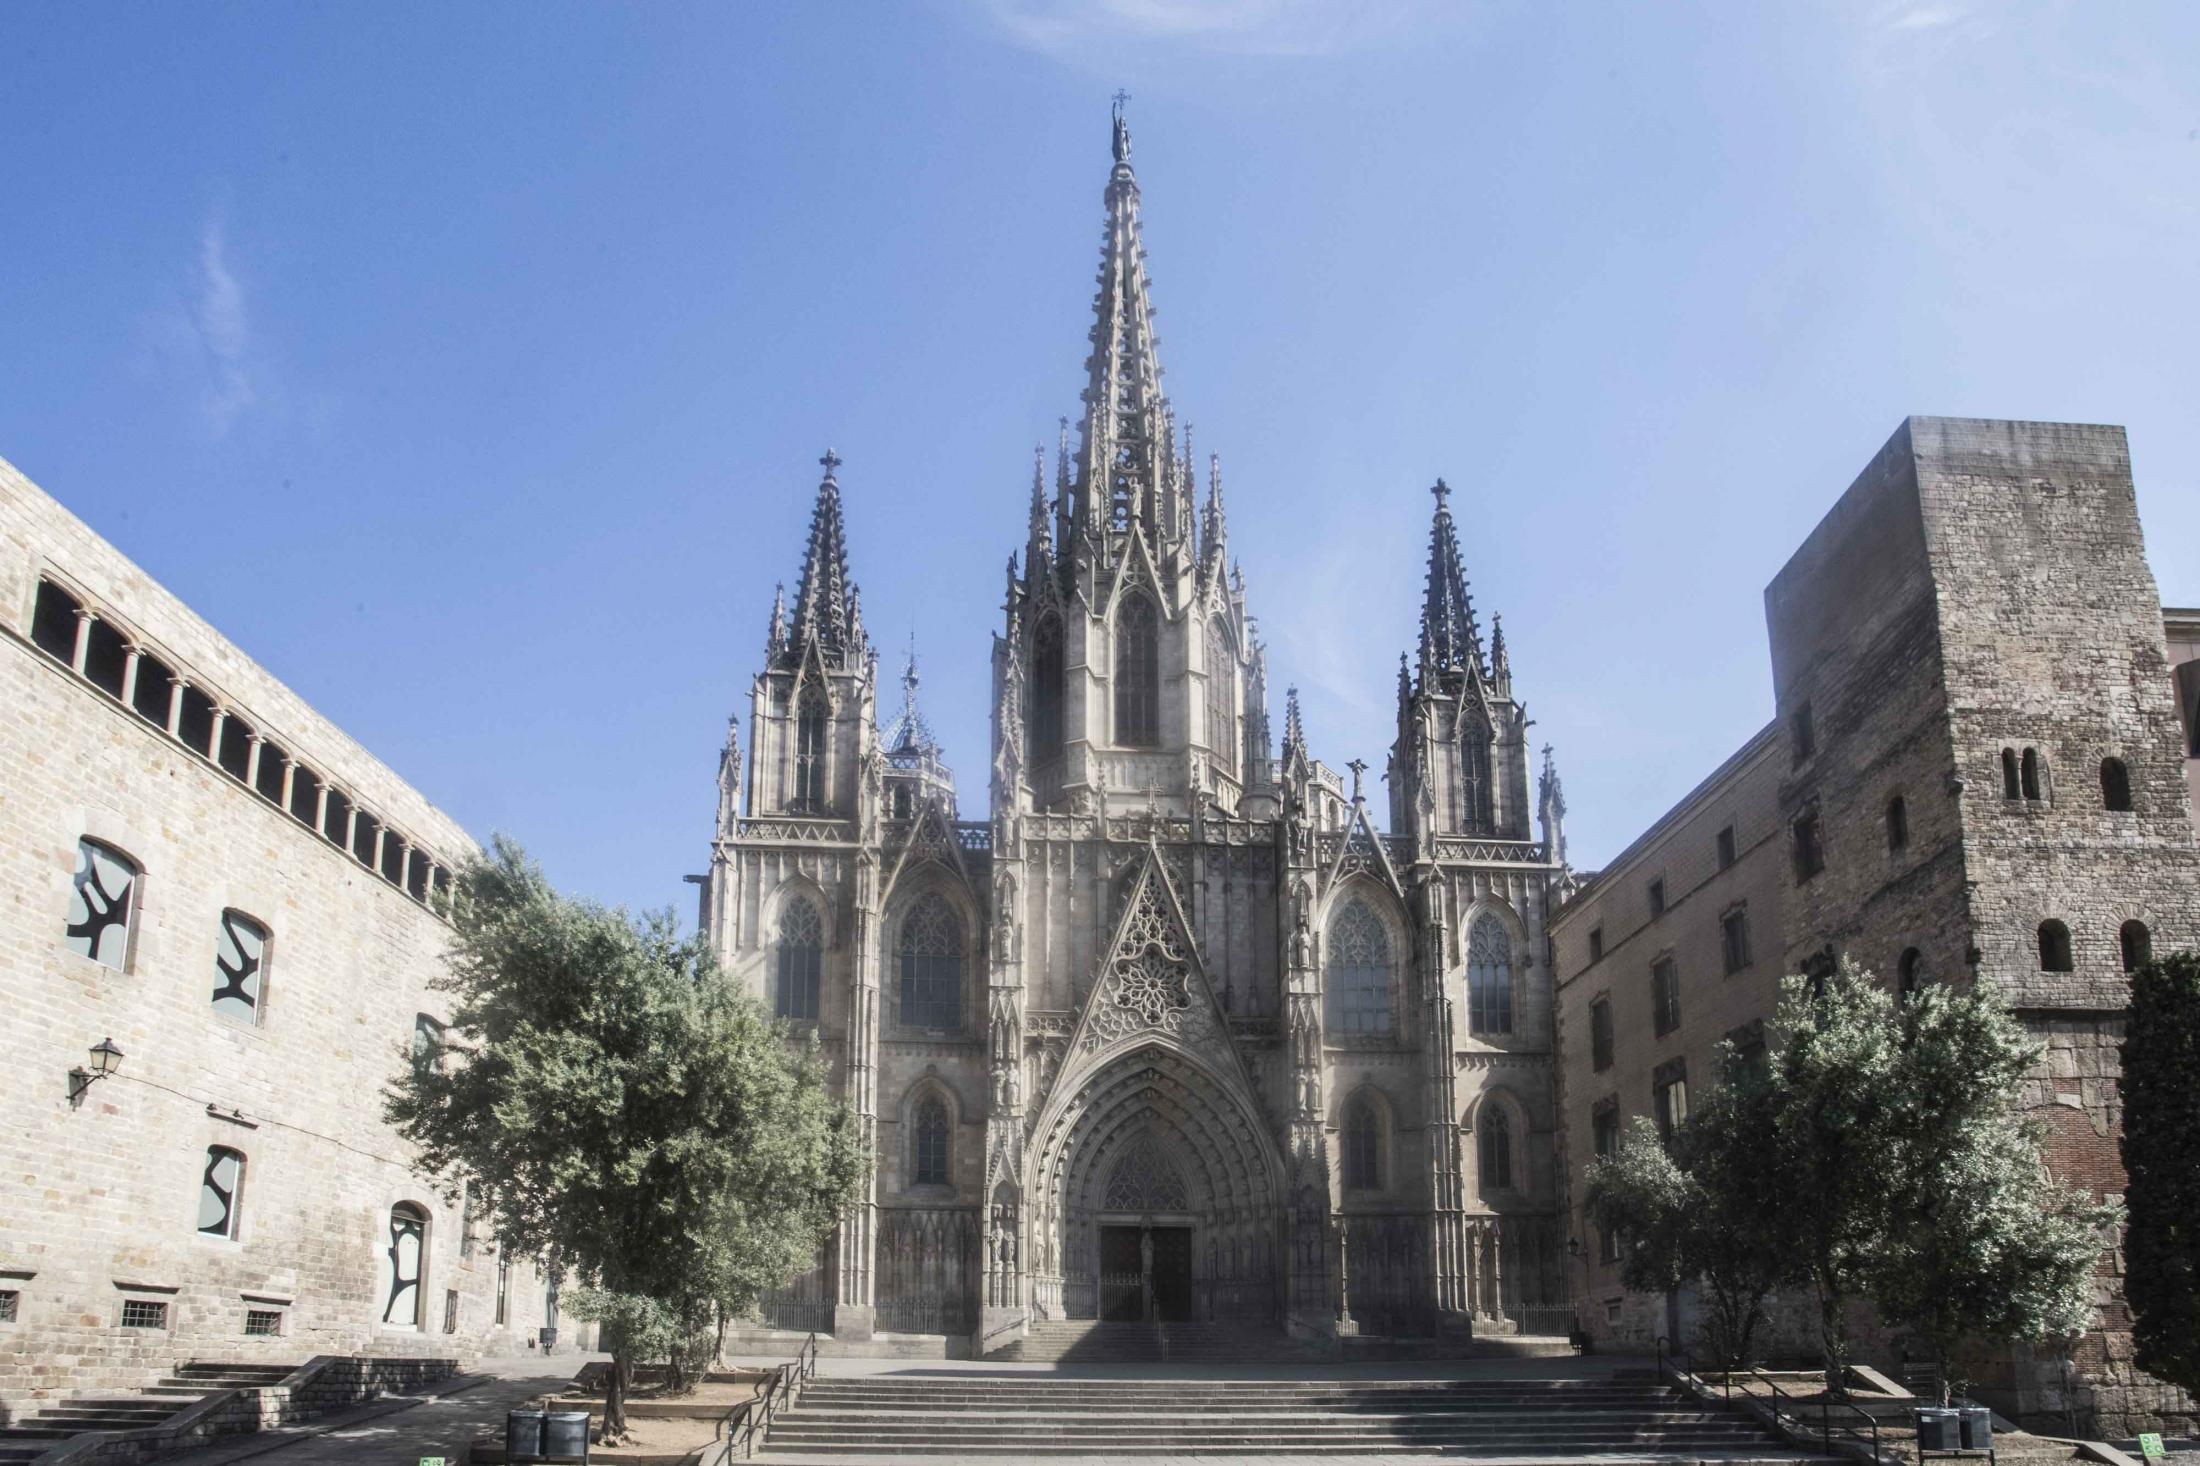 April 10, 2020 - Barcelona, Spain: HOLY FRIDAY at 5:00 pm, in the Cathedral of Barcelona, the Passion of the Lord is celebrated directly and on television without devotees in the Curch